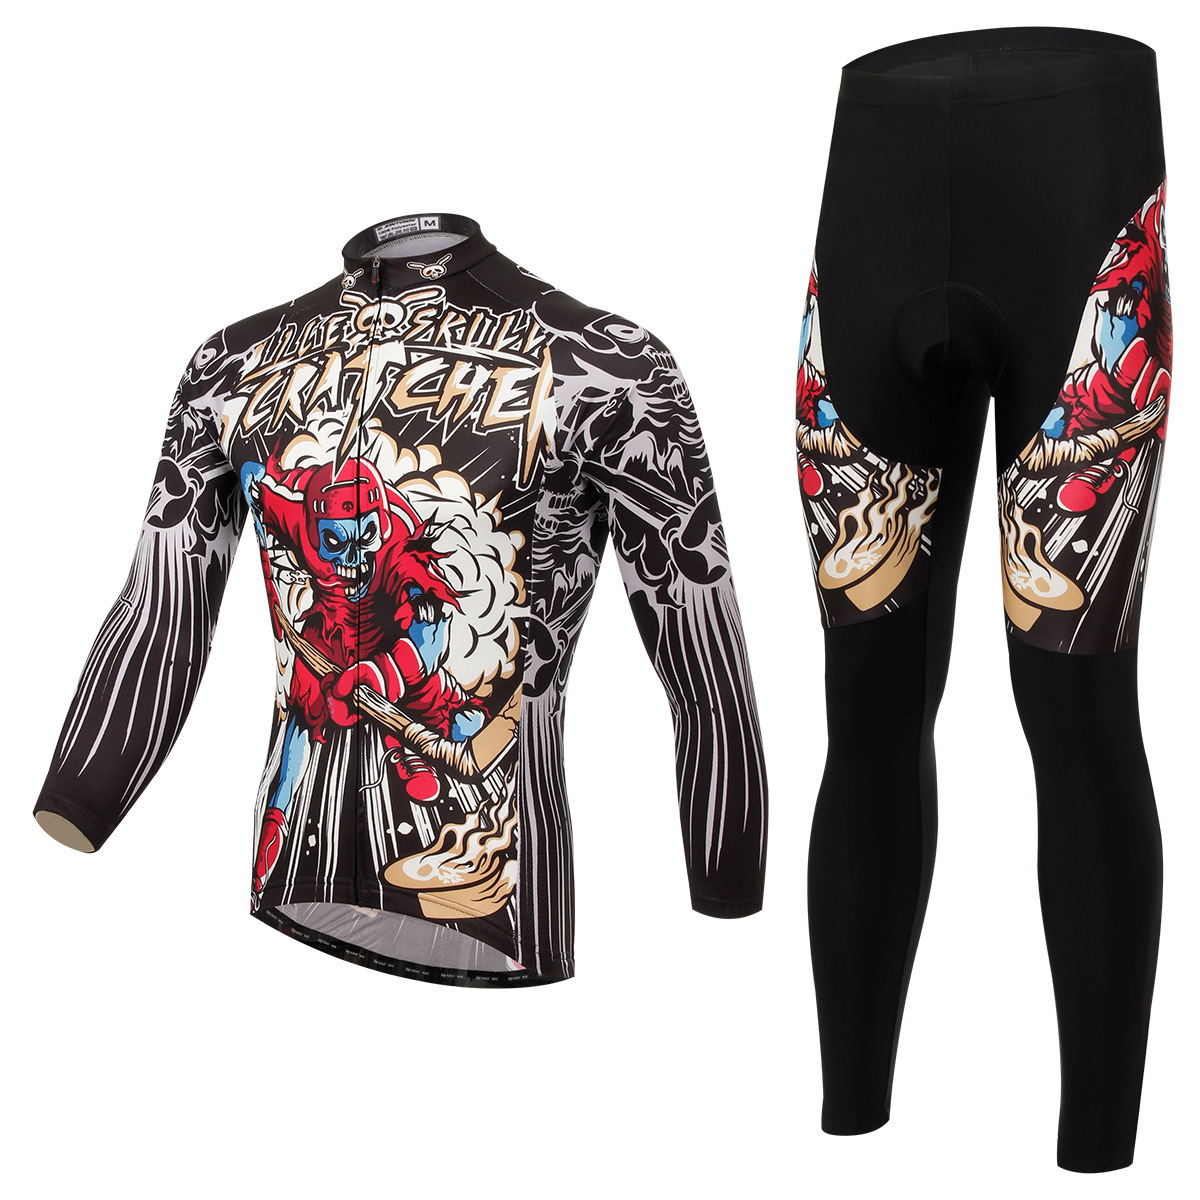 XINTOWN cycling jersey hockey bike riding wear long sleeve suit bicycle suits sweat-absorbent quick drying summer sweatshirt